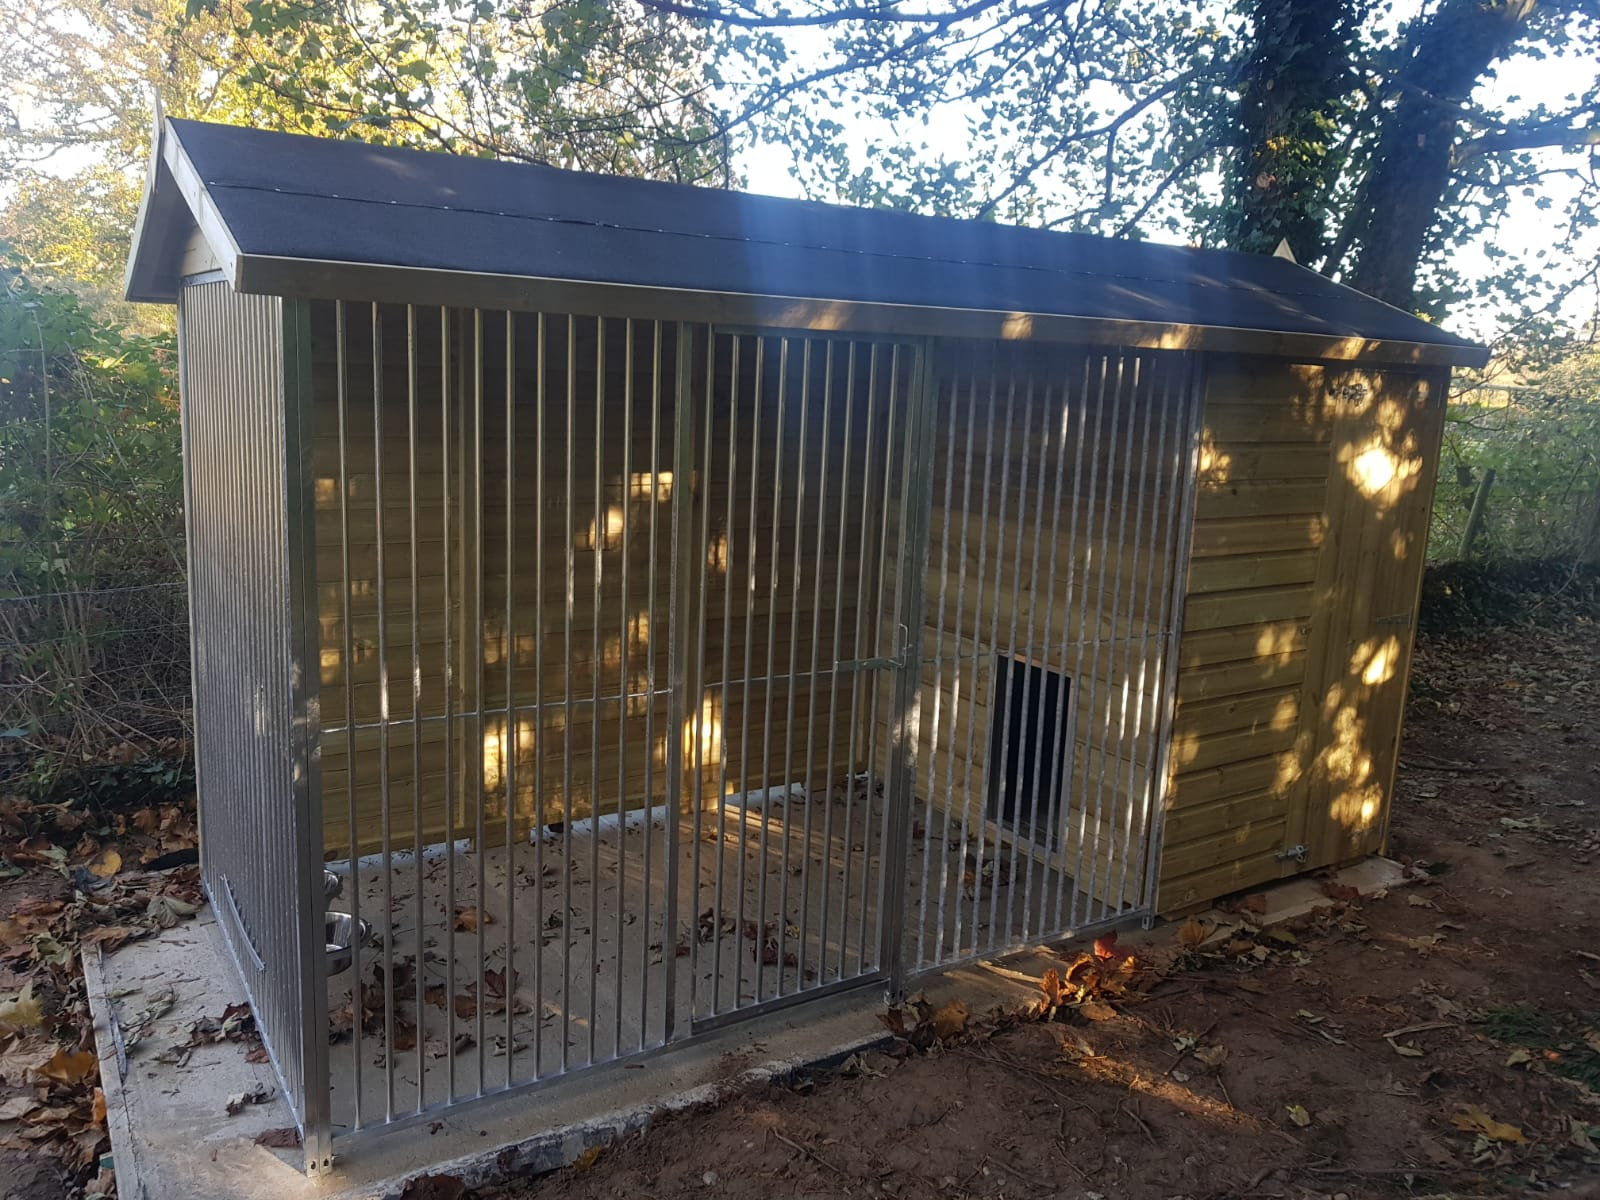 The Wymbury 10.6ft Wide X 5ft Deep Dog Kennel